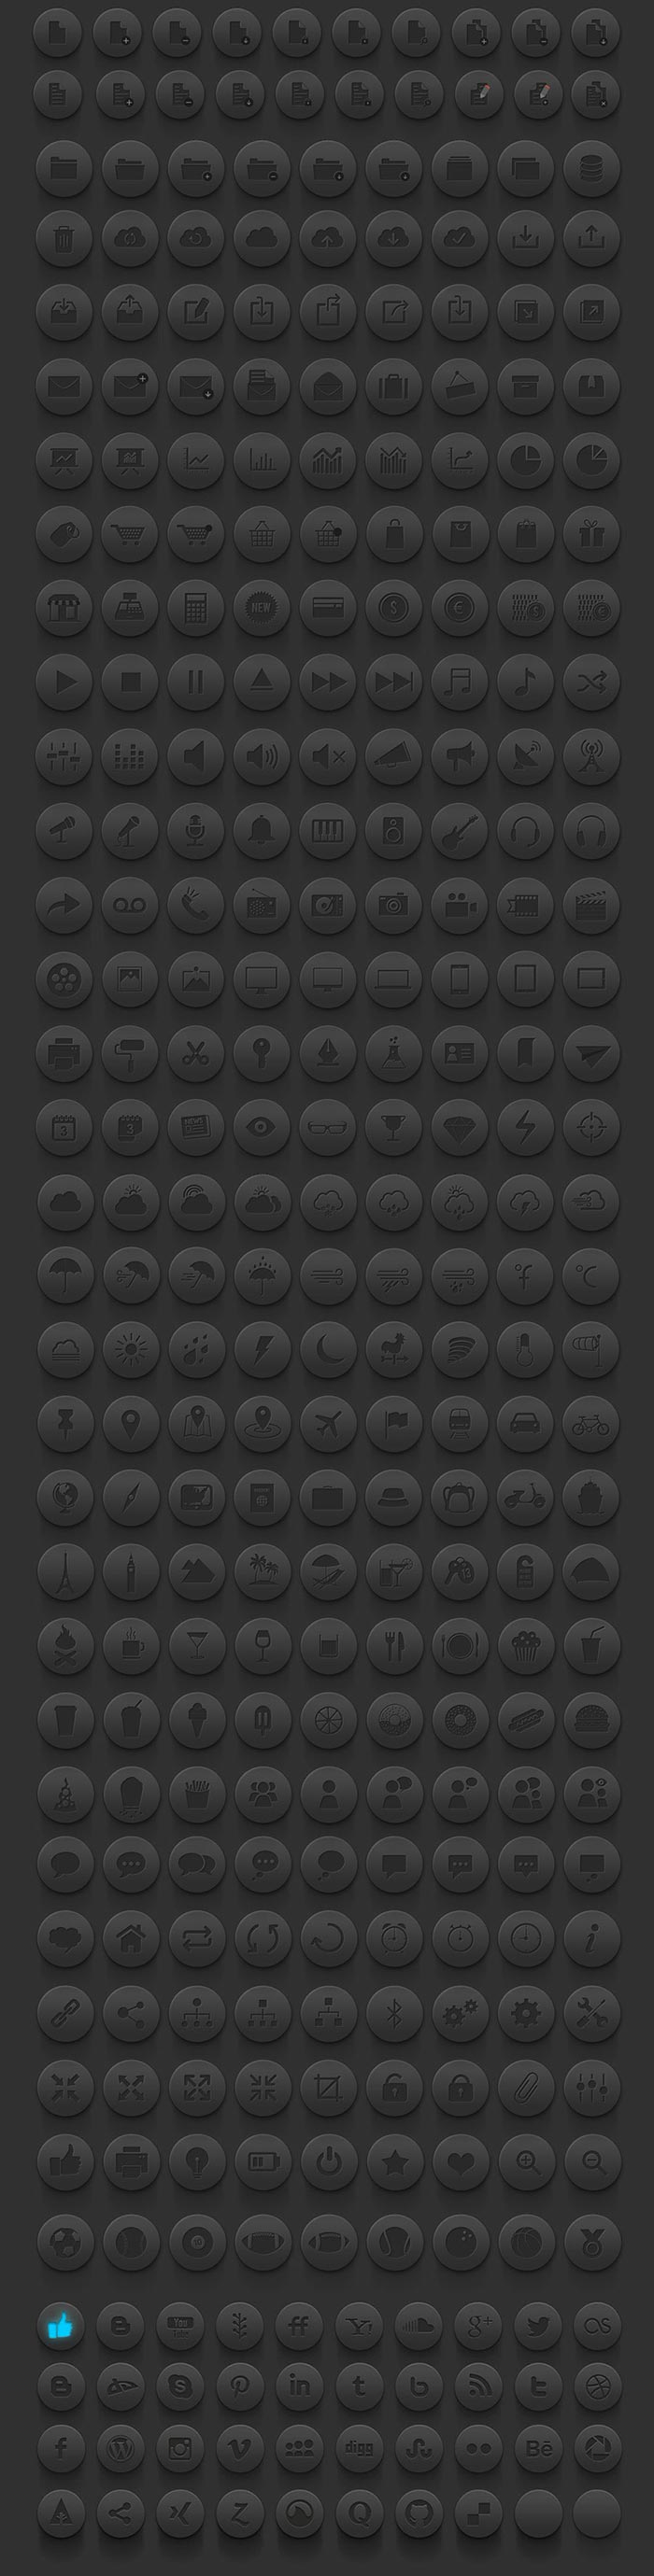 Tonicons-buttons-black